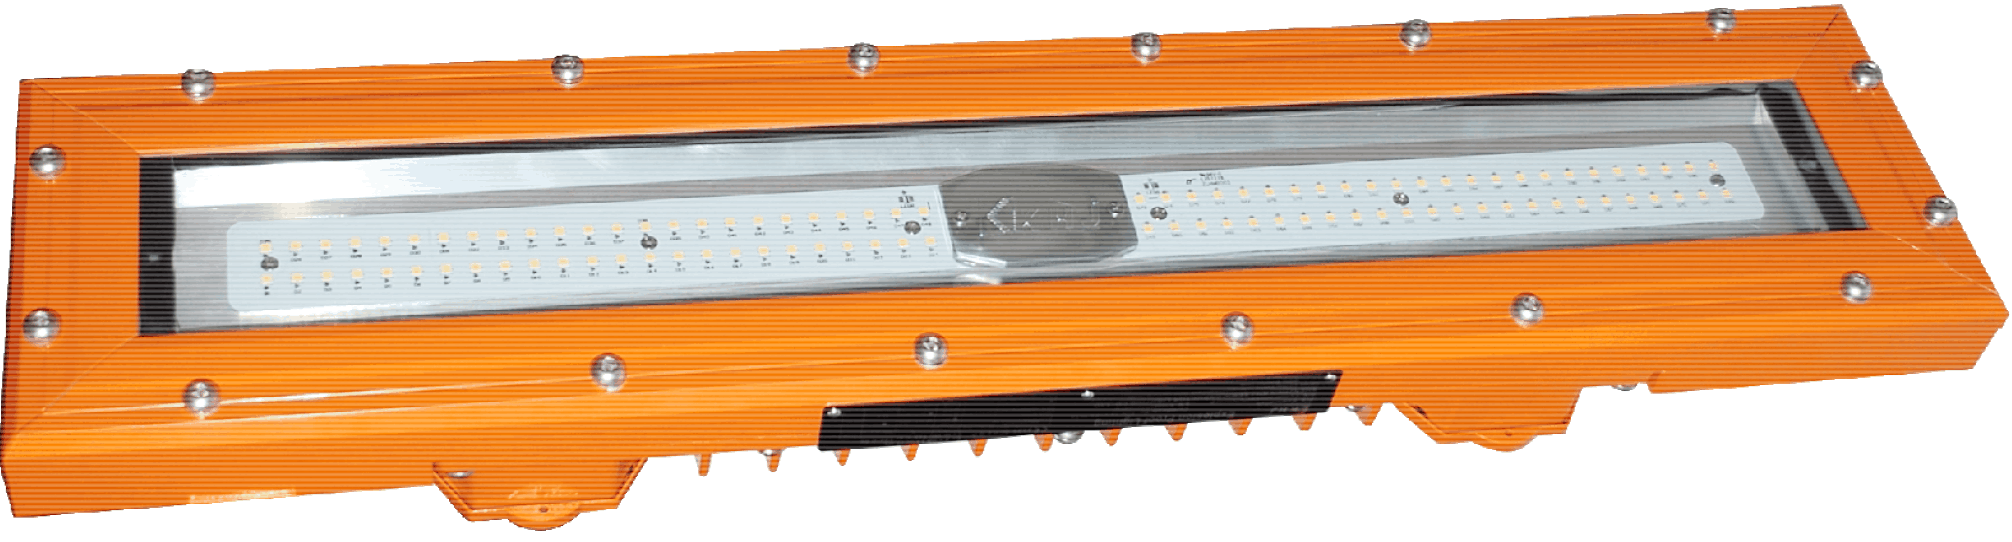 Ex-KSF18600 Luminaire LED Swordfish 18W ATEX Version secourue 180Mn